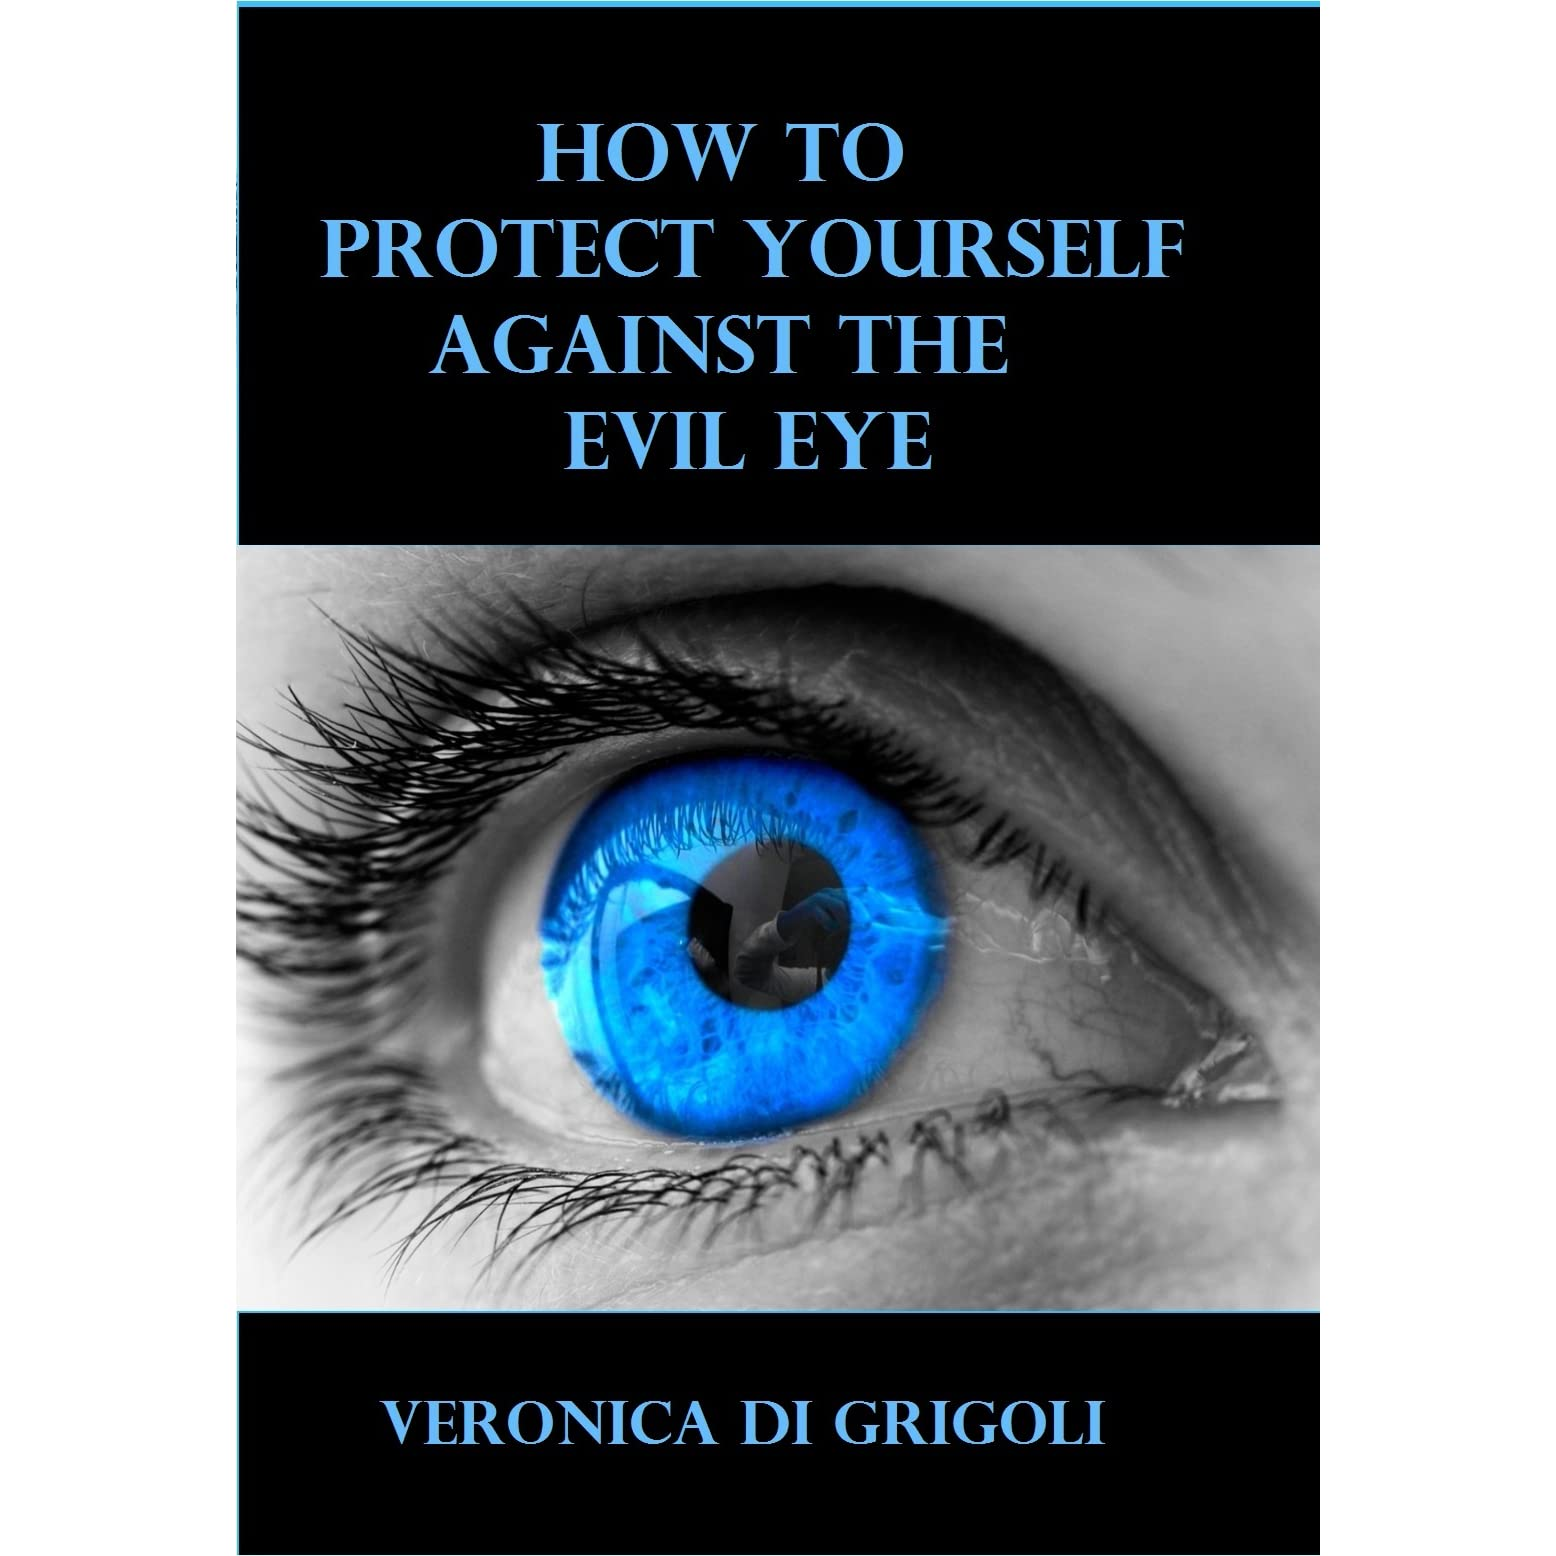 How to Protect Yourself against the Evil Eye by Veronica Di